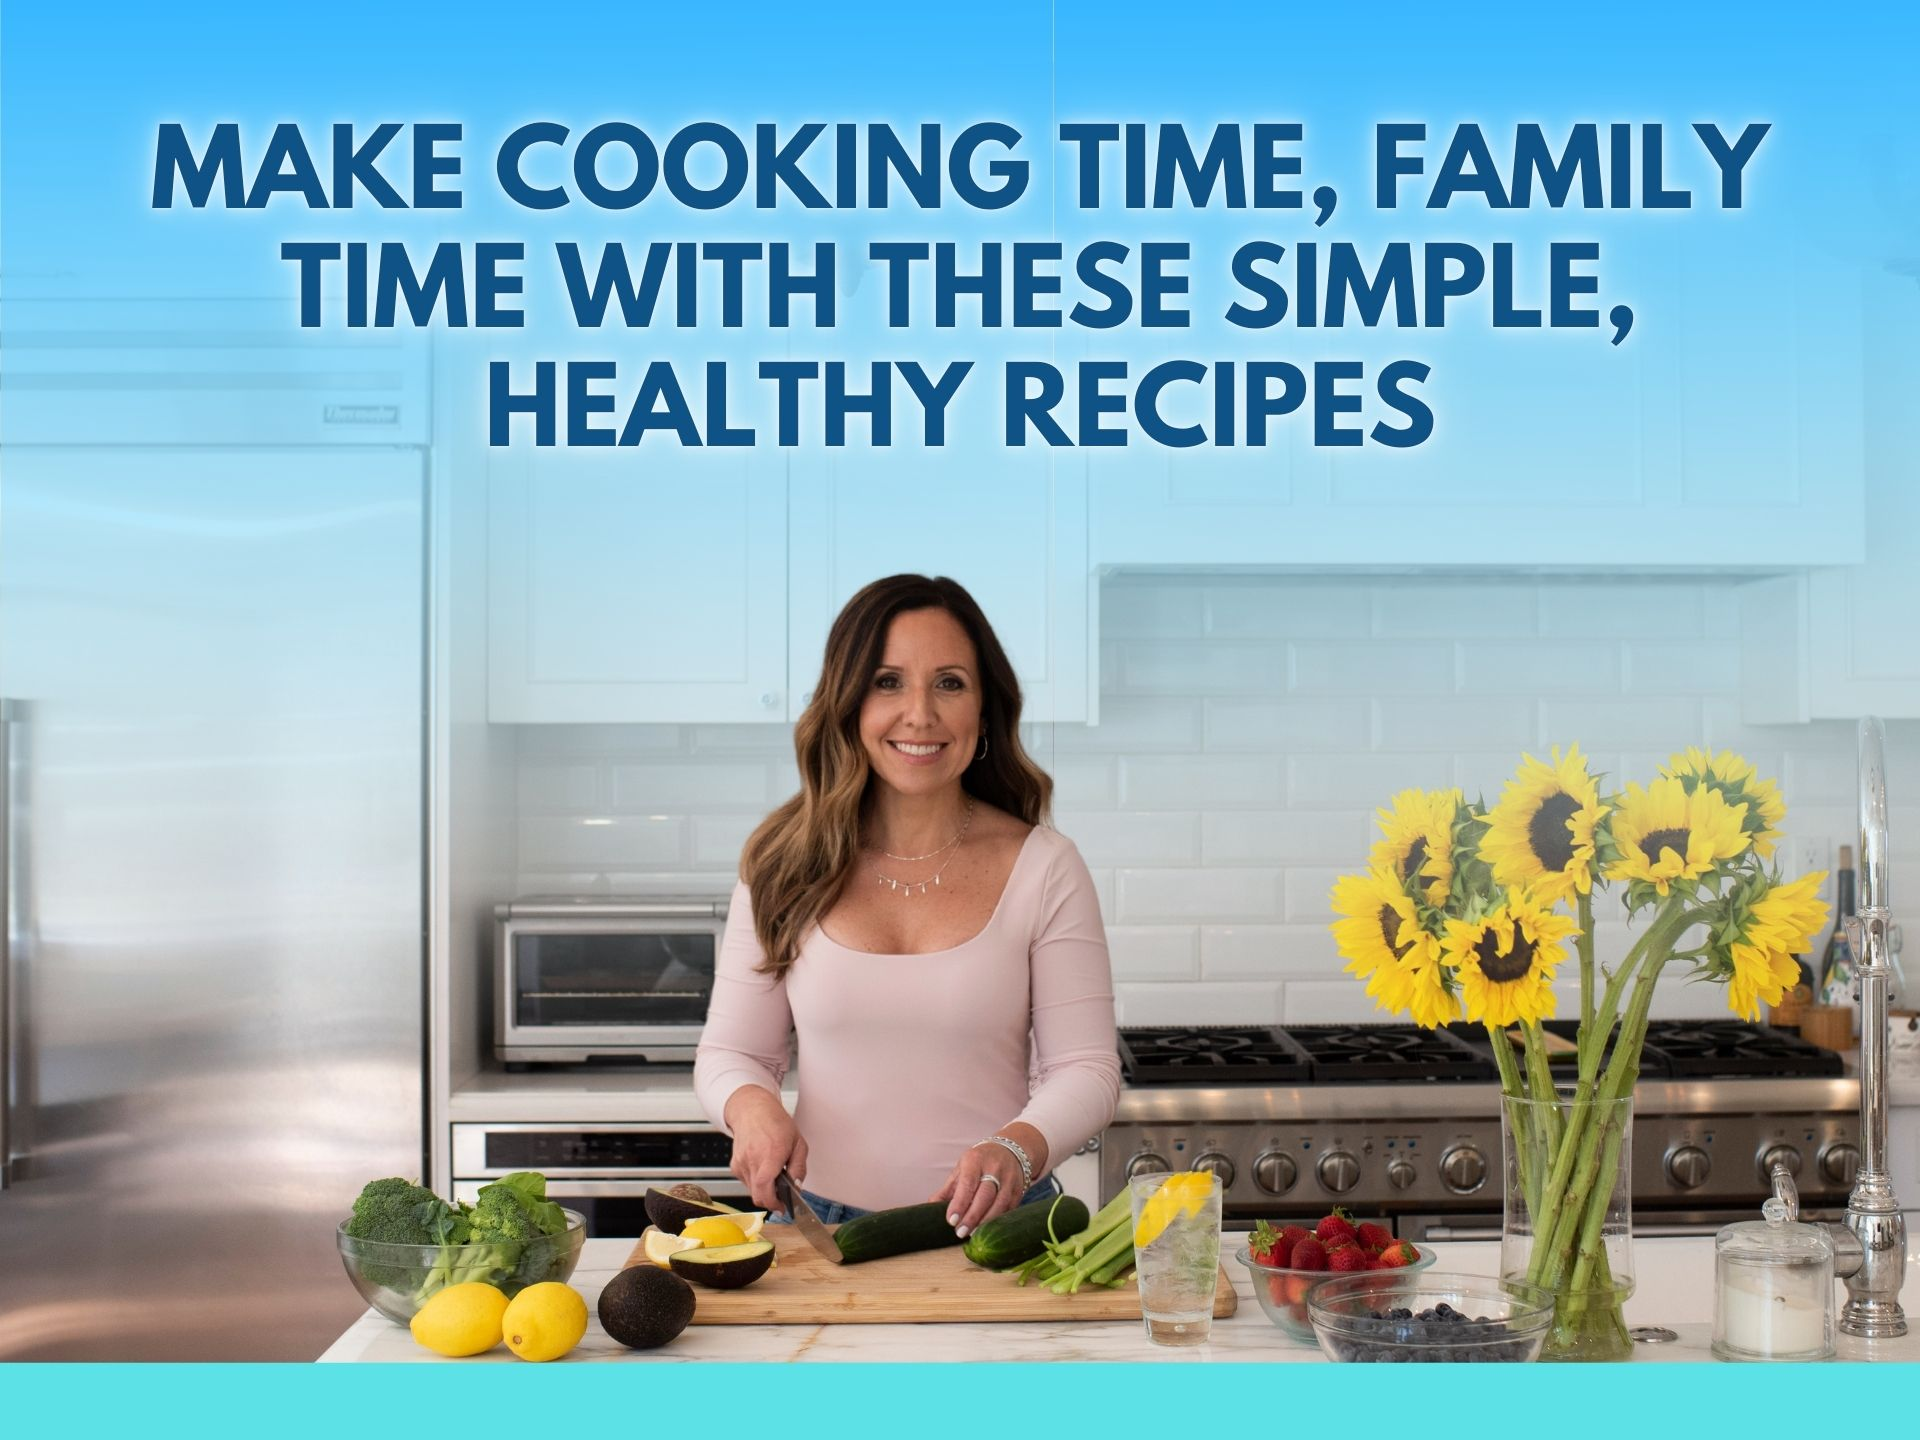 Make Cooking Time, Family Time with These Simple, Healthy Recipes